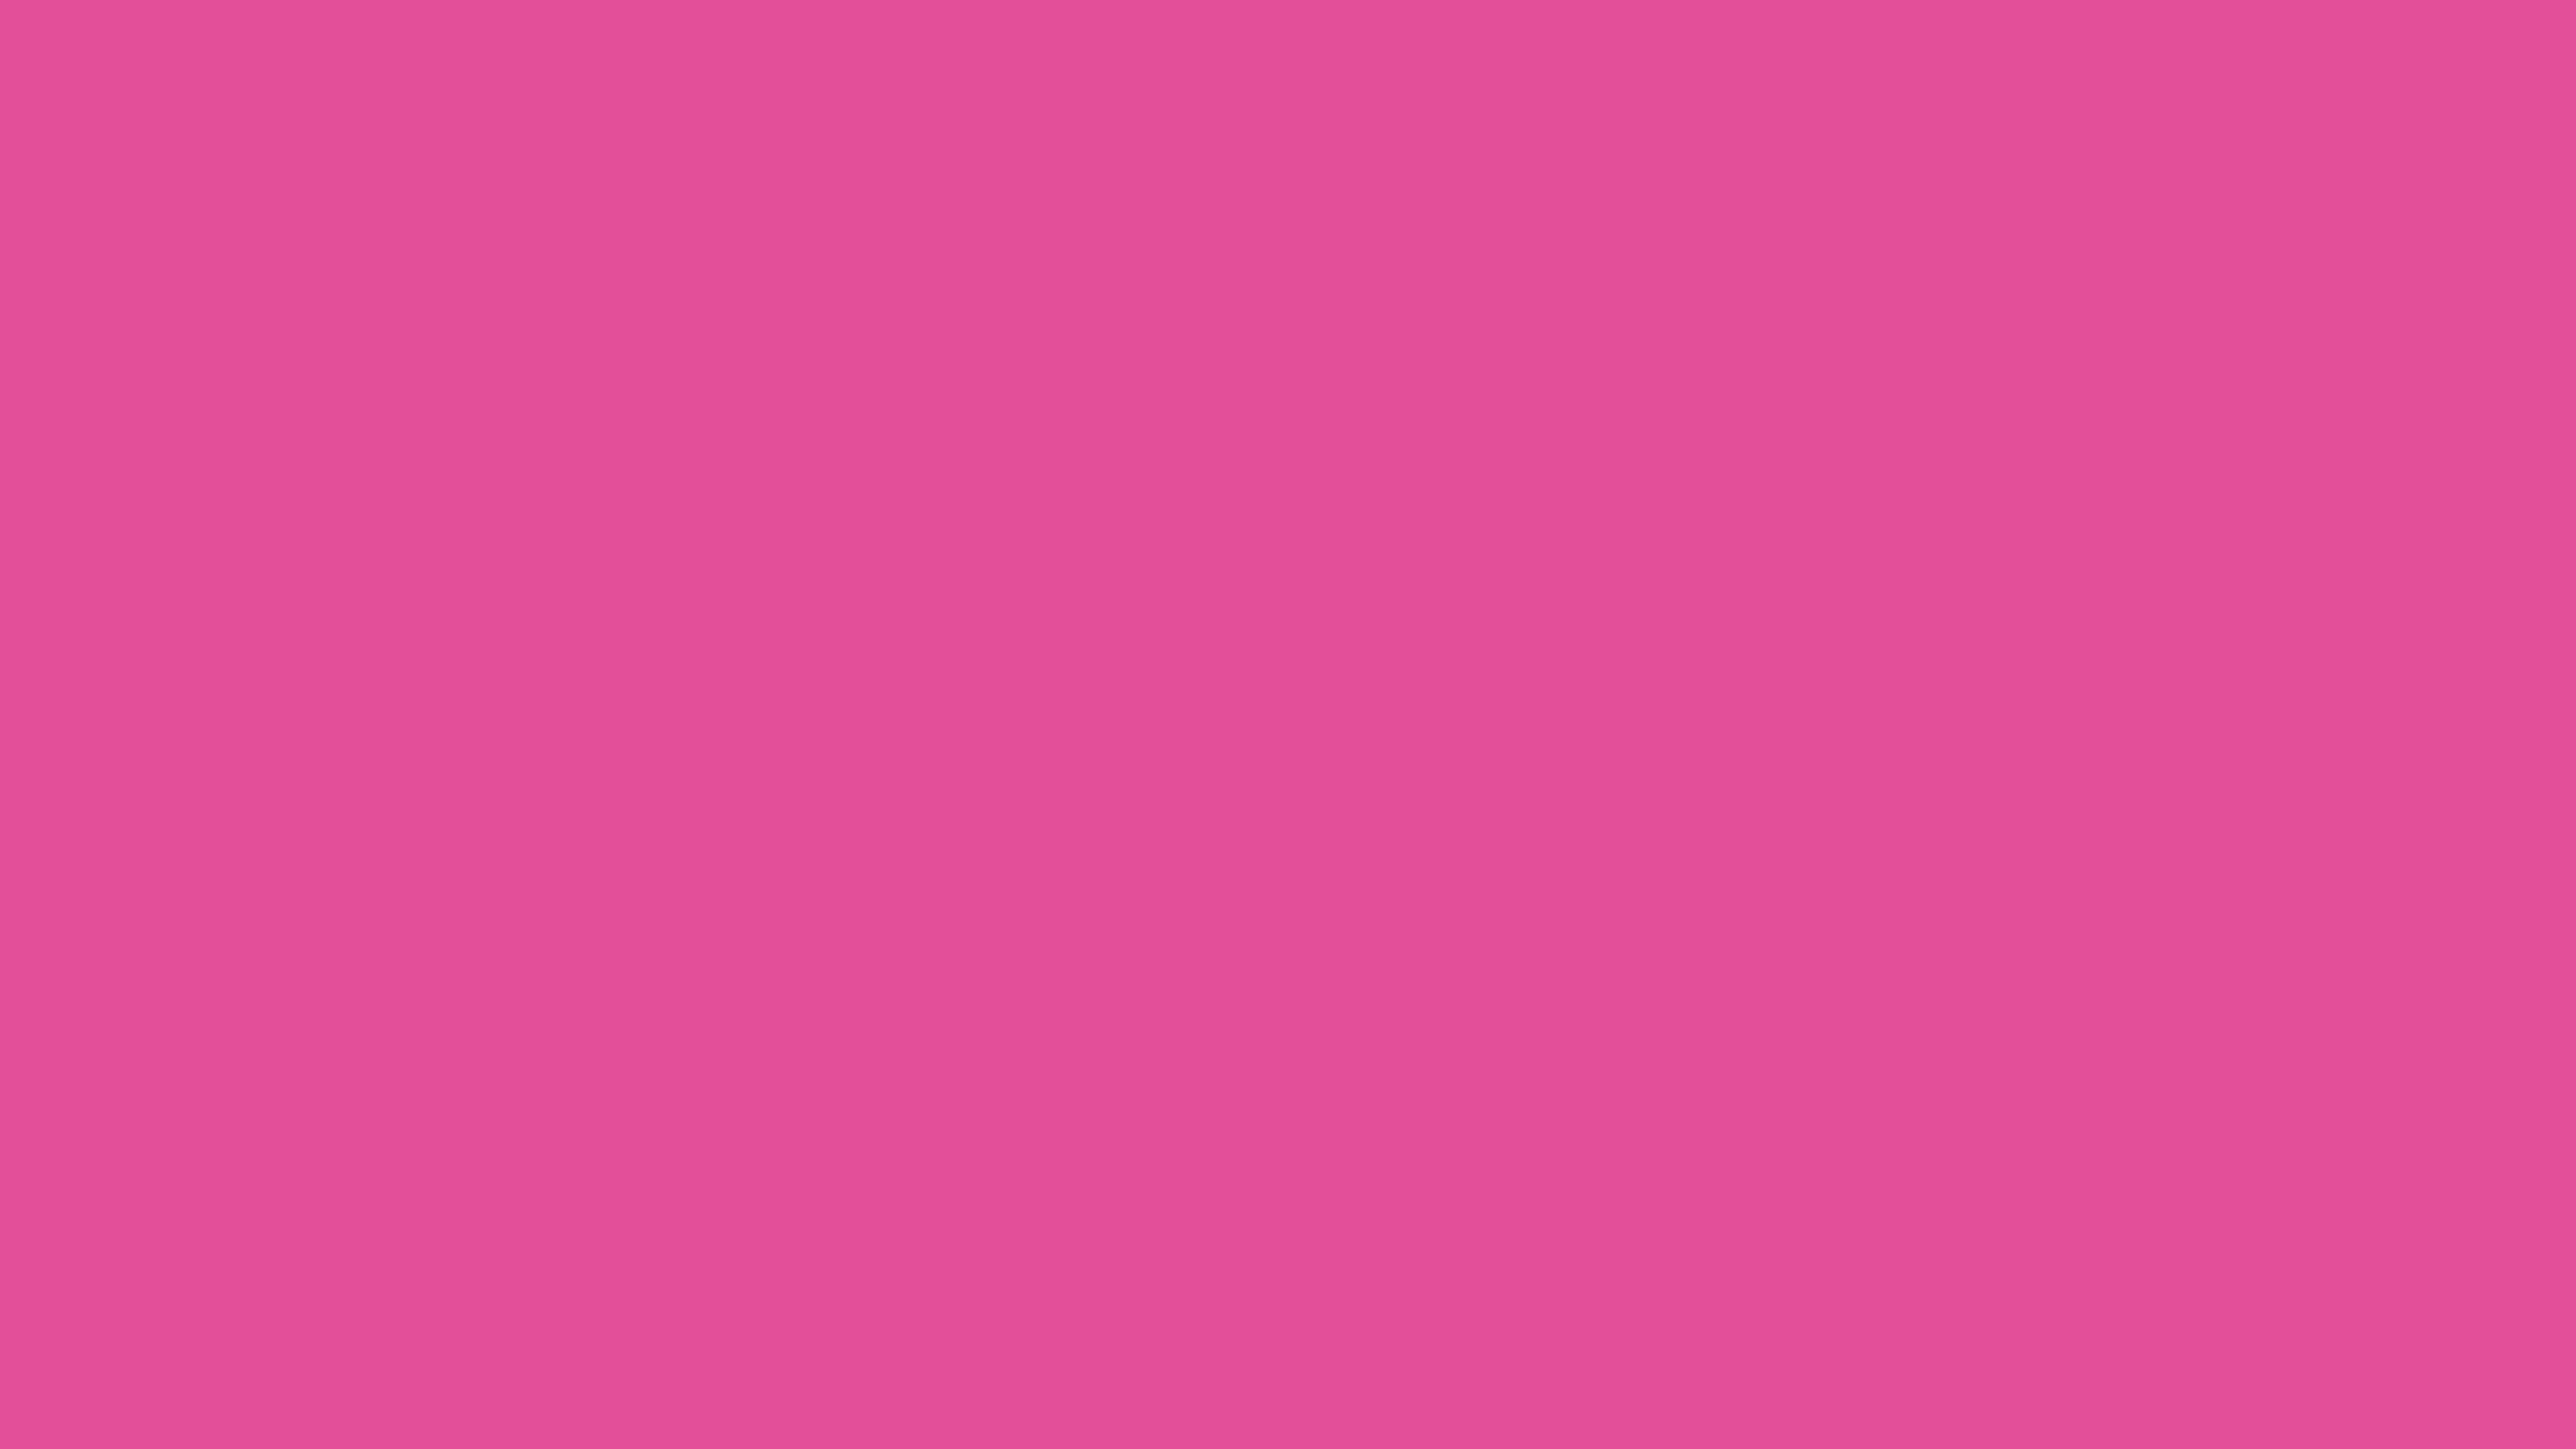 3840x2160 Raspberry Pink Solid Color Background